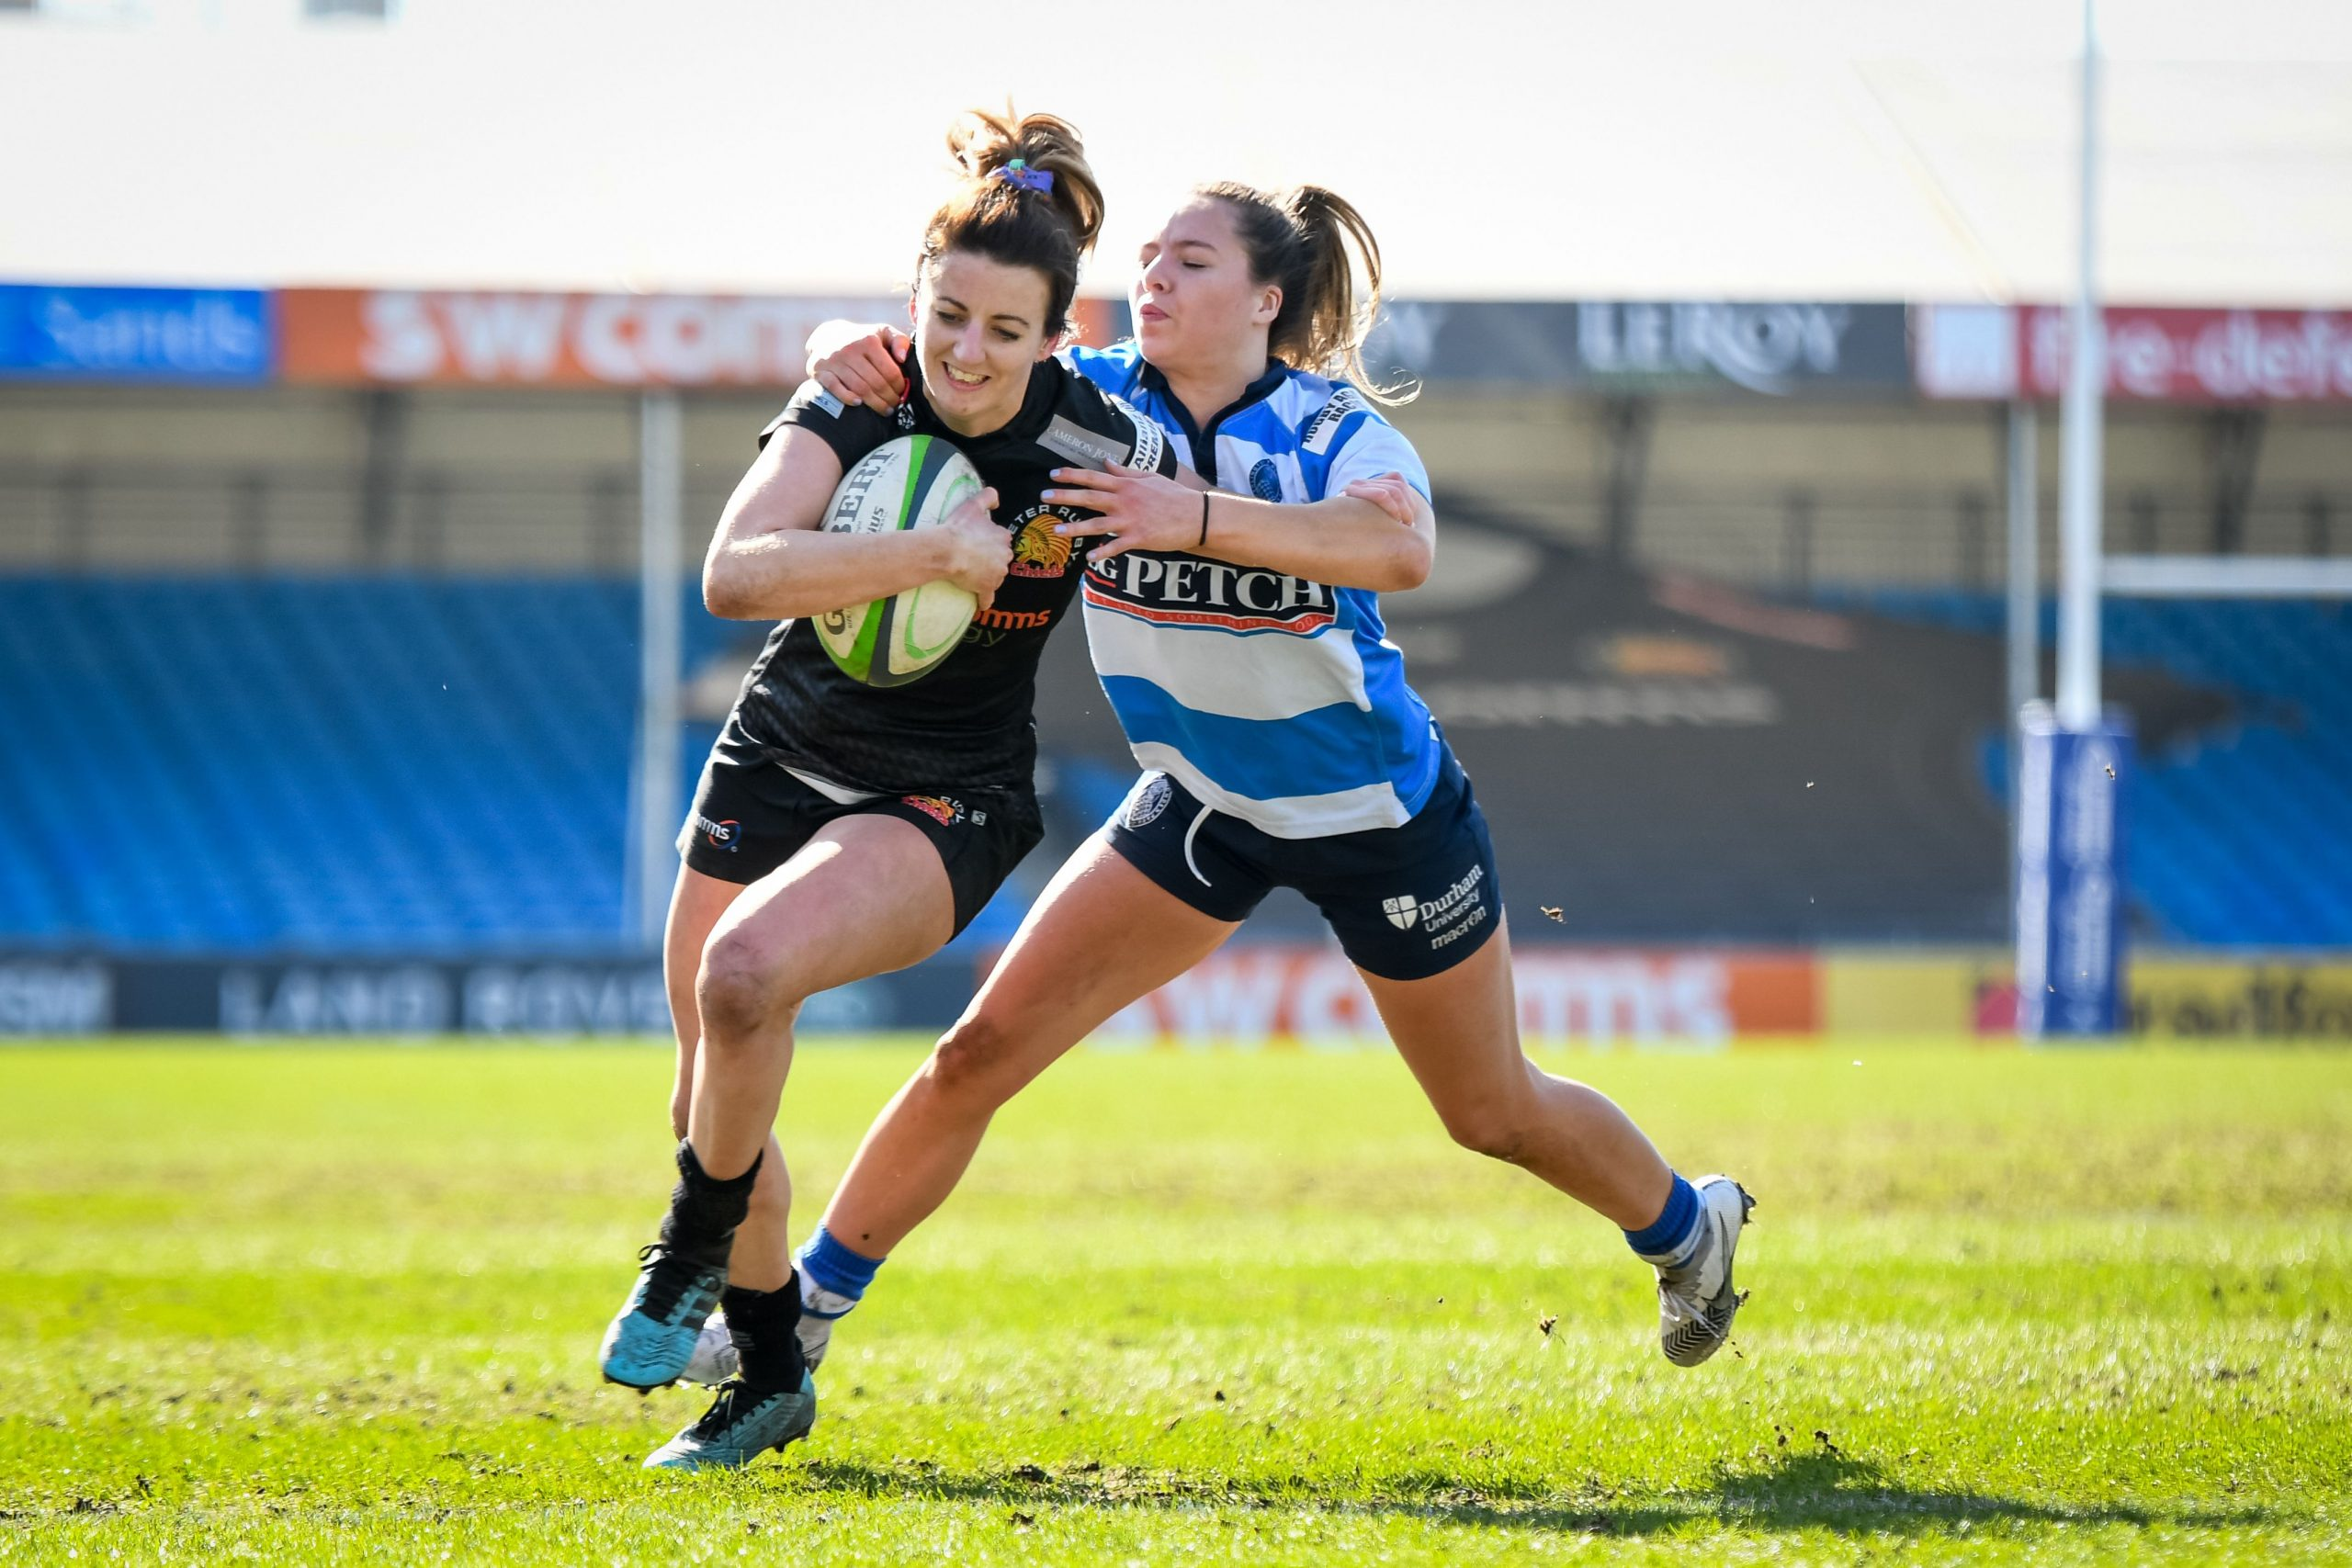 Kingston University rugby player says more needs to be done to raise awareness of women's rugby